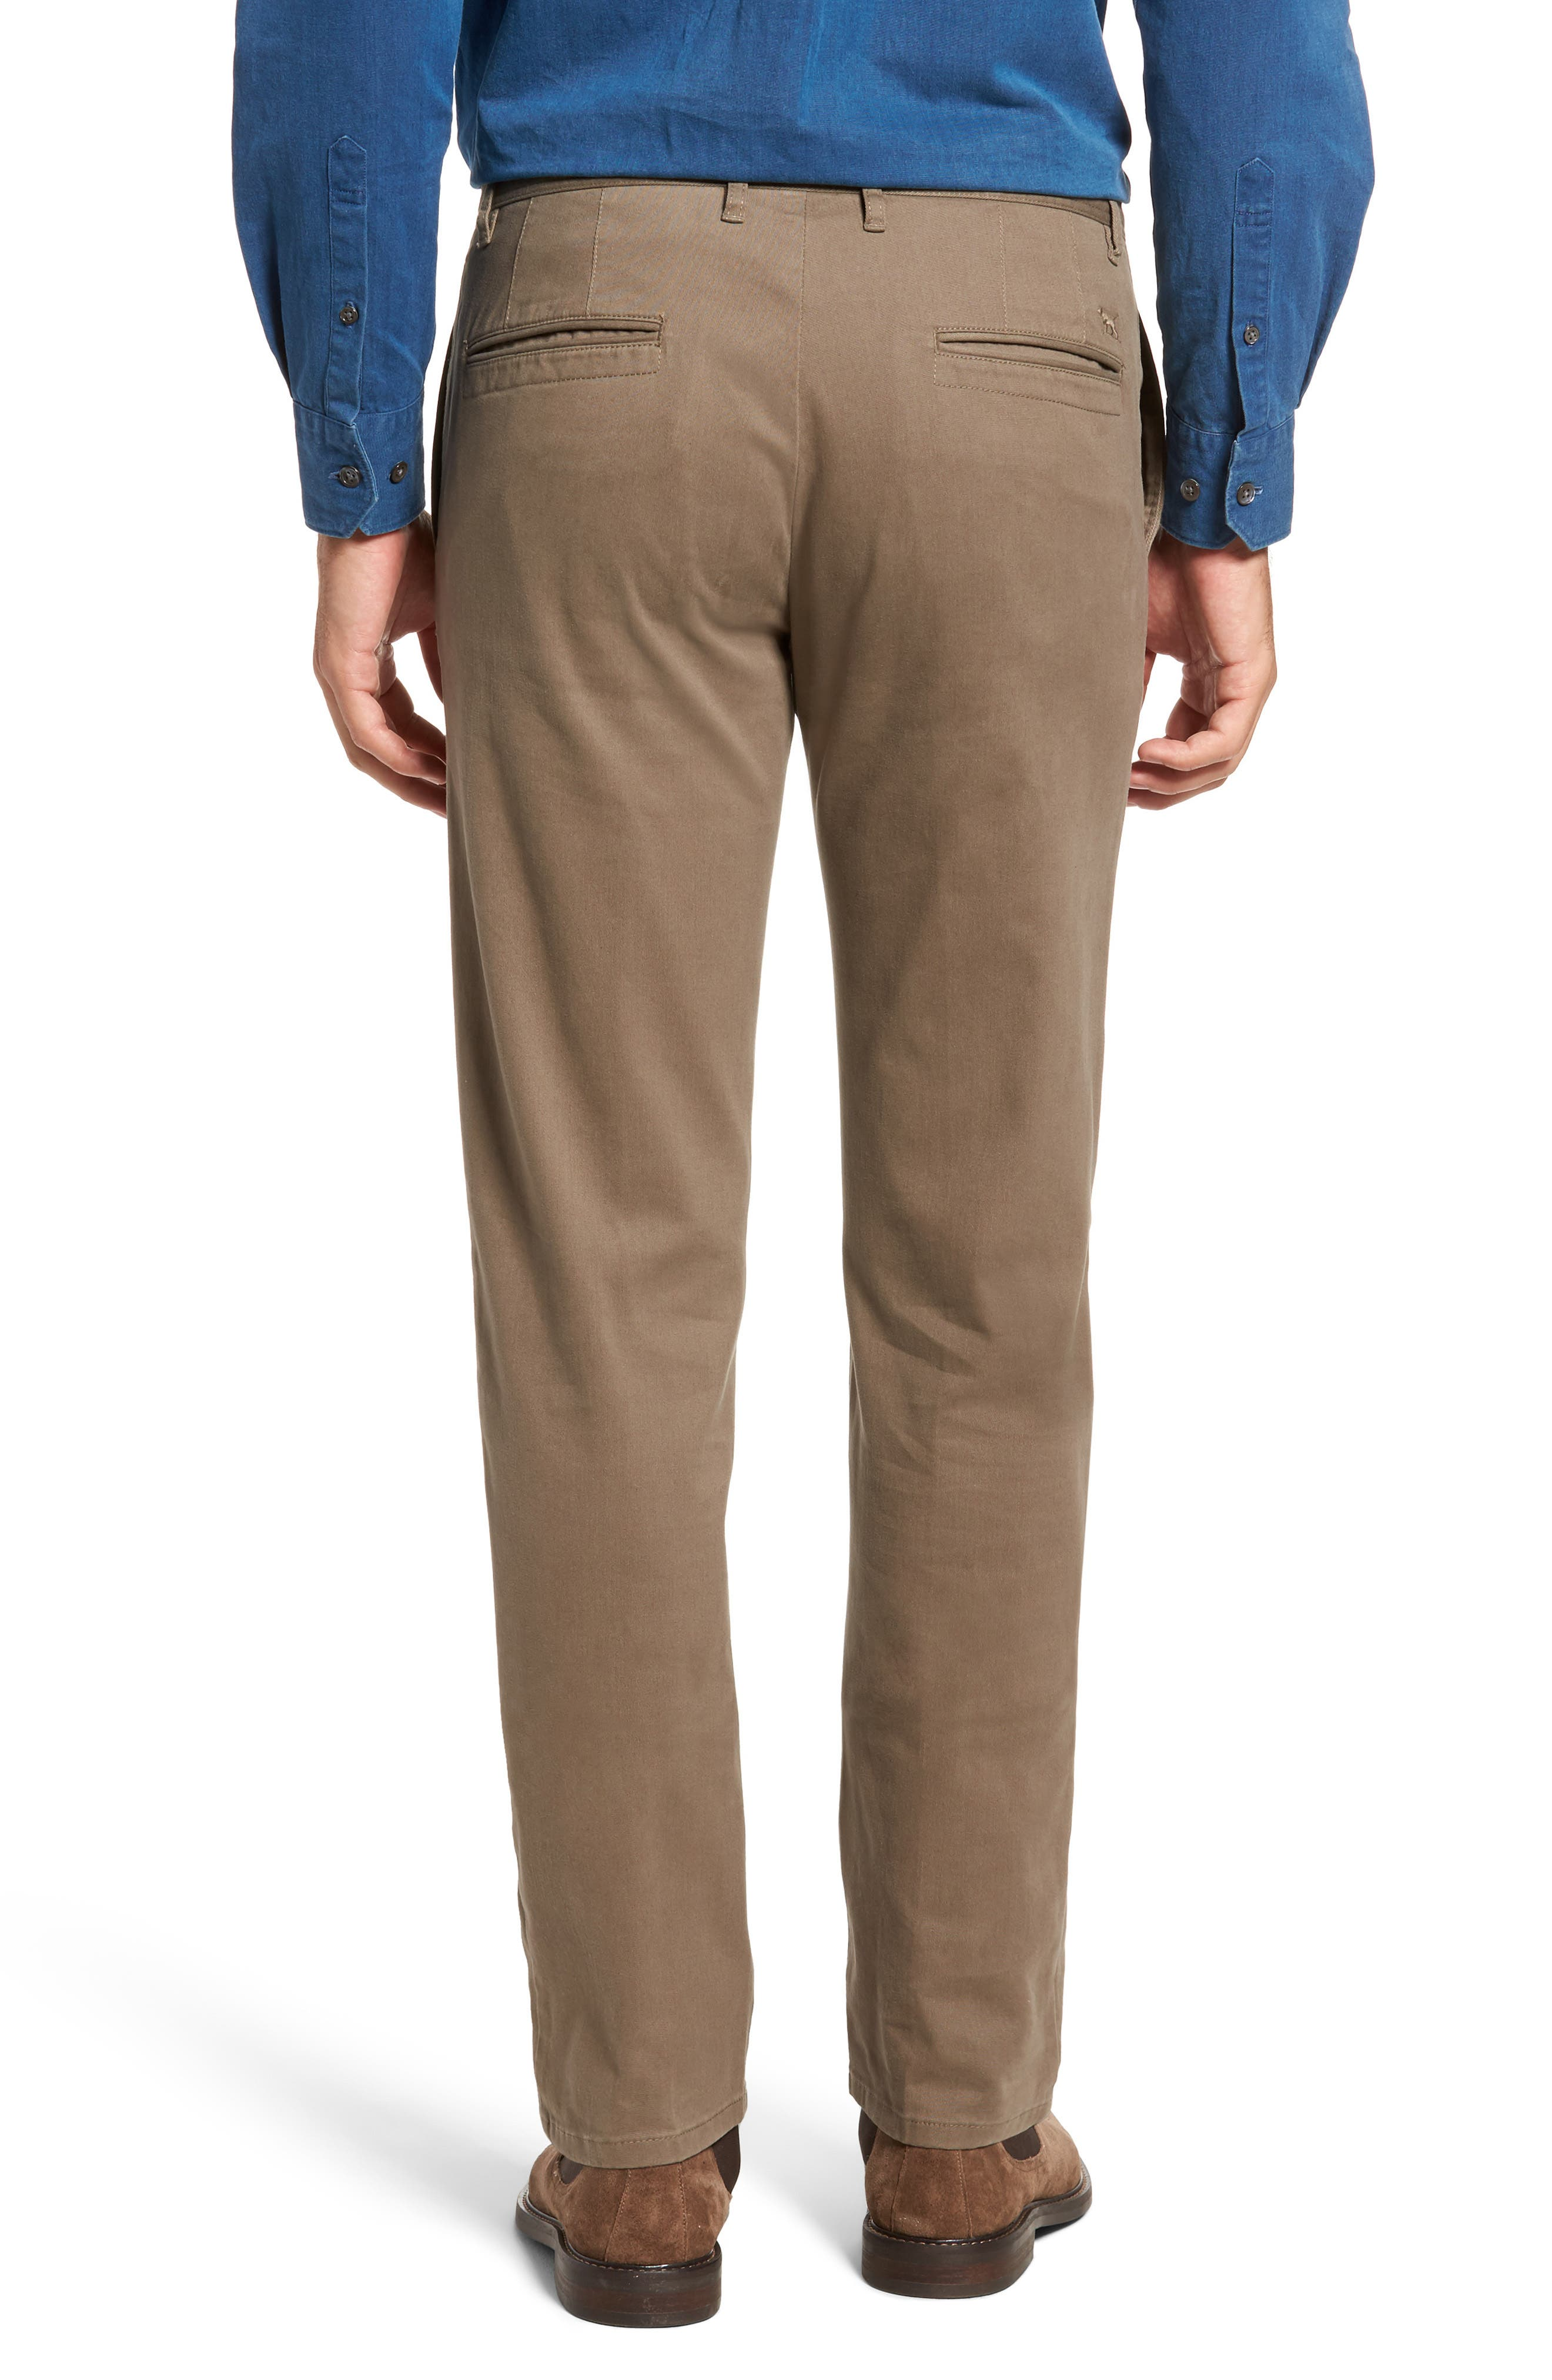 Stanely Brook Custom Fit Chinos,                             Alternate thumbnail 2, color,                             TAUPE